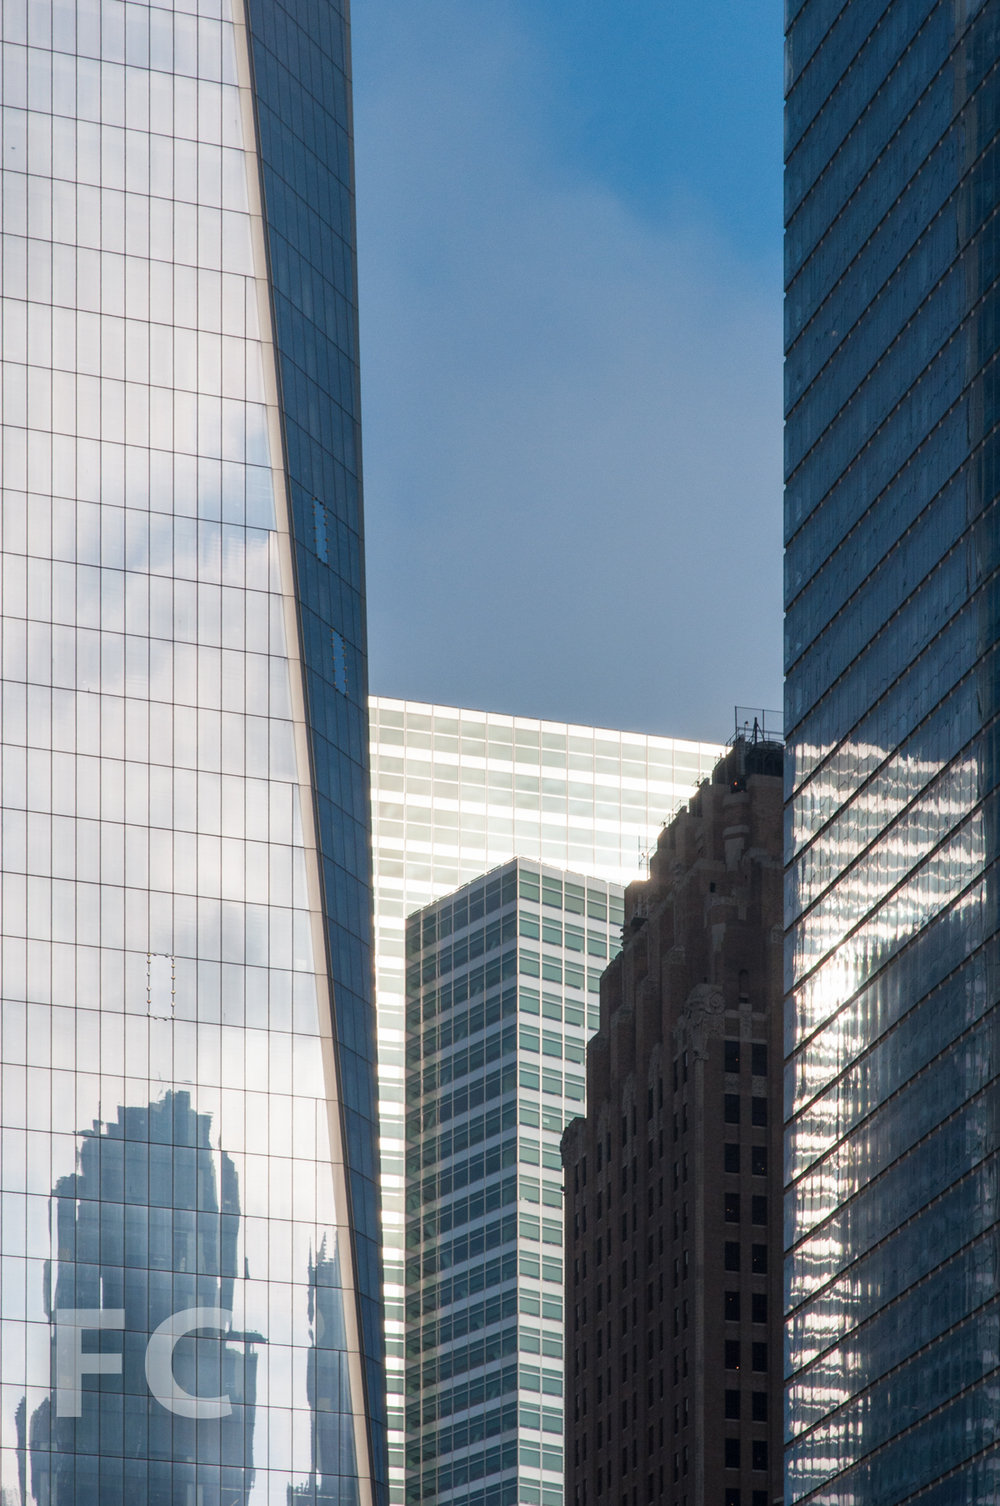 The Goldman Sachs Tower (center) amongst 1 WTC (left) and 7 WTC (right).